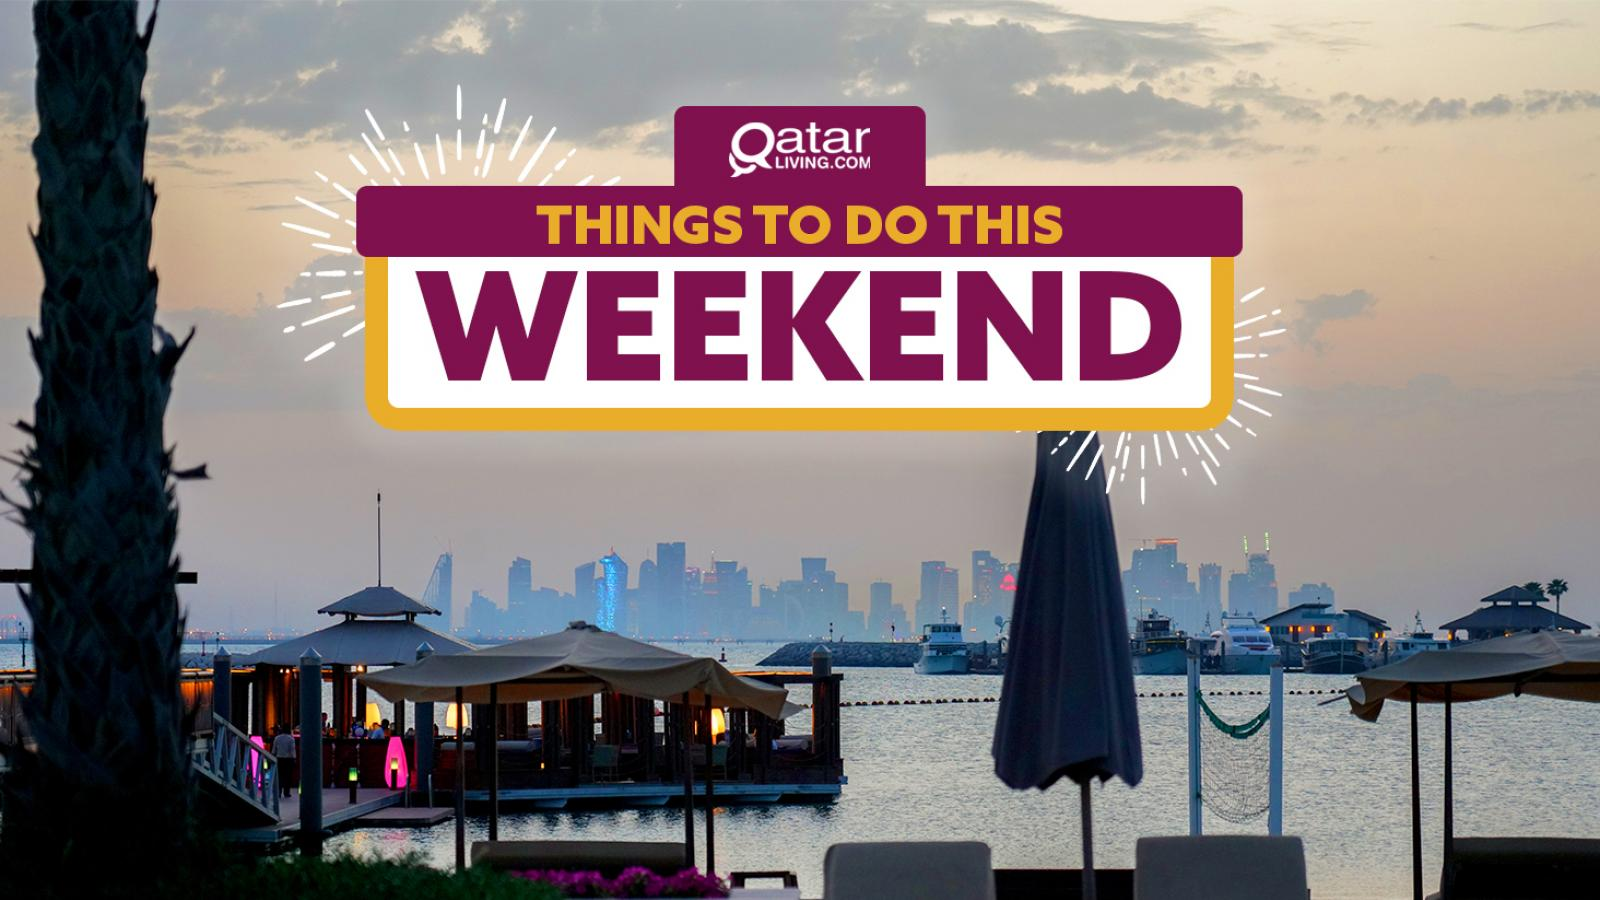 Things to do in Qatar this weekend: January 9-11